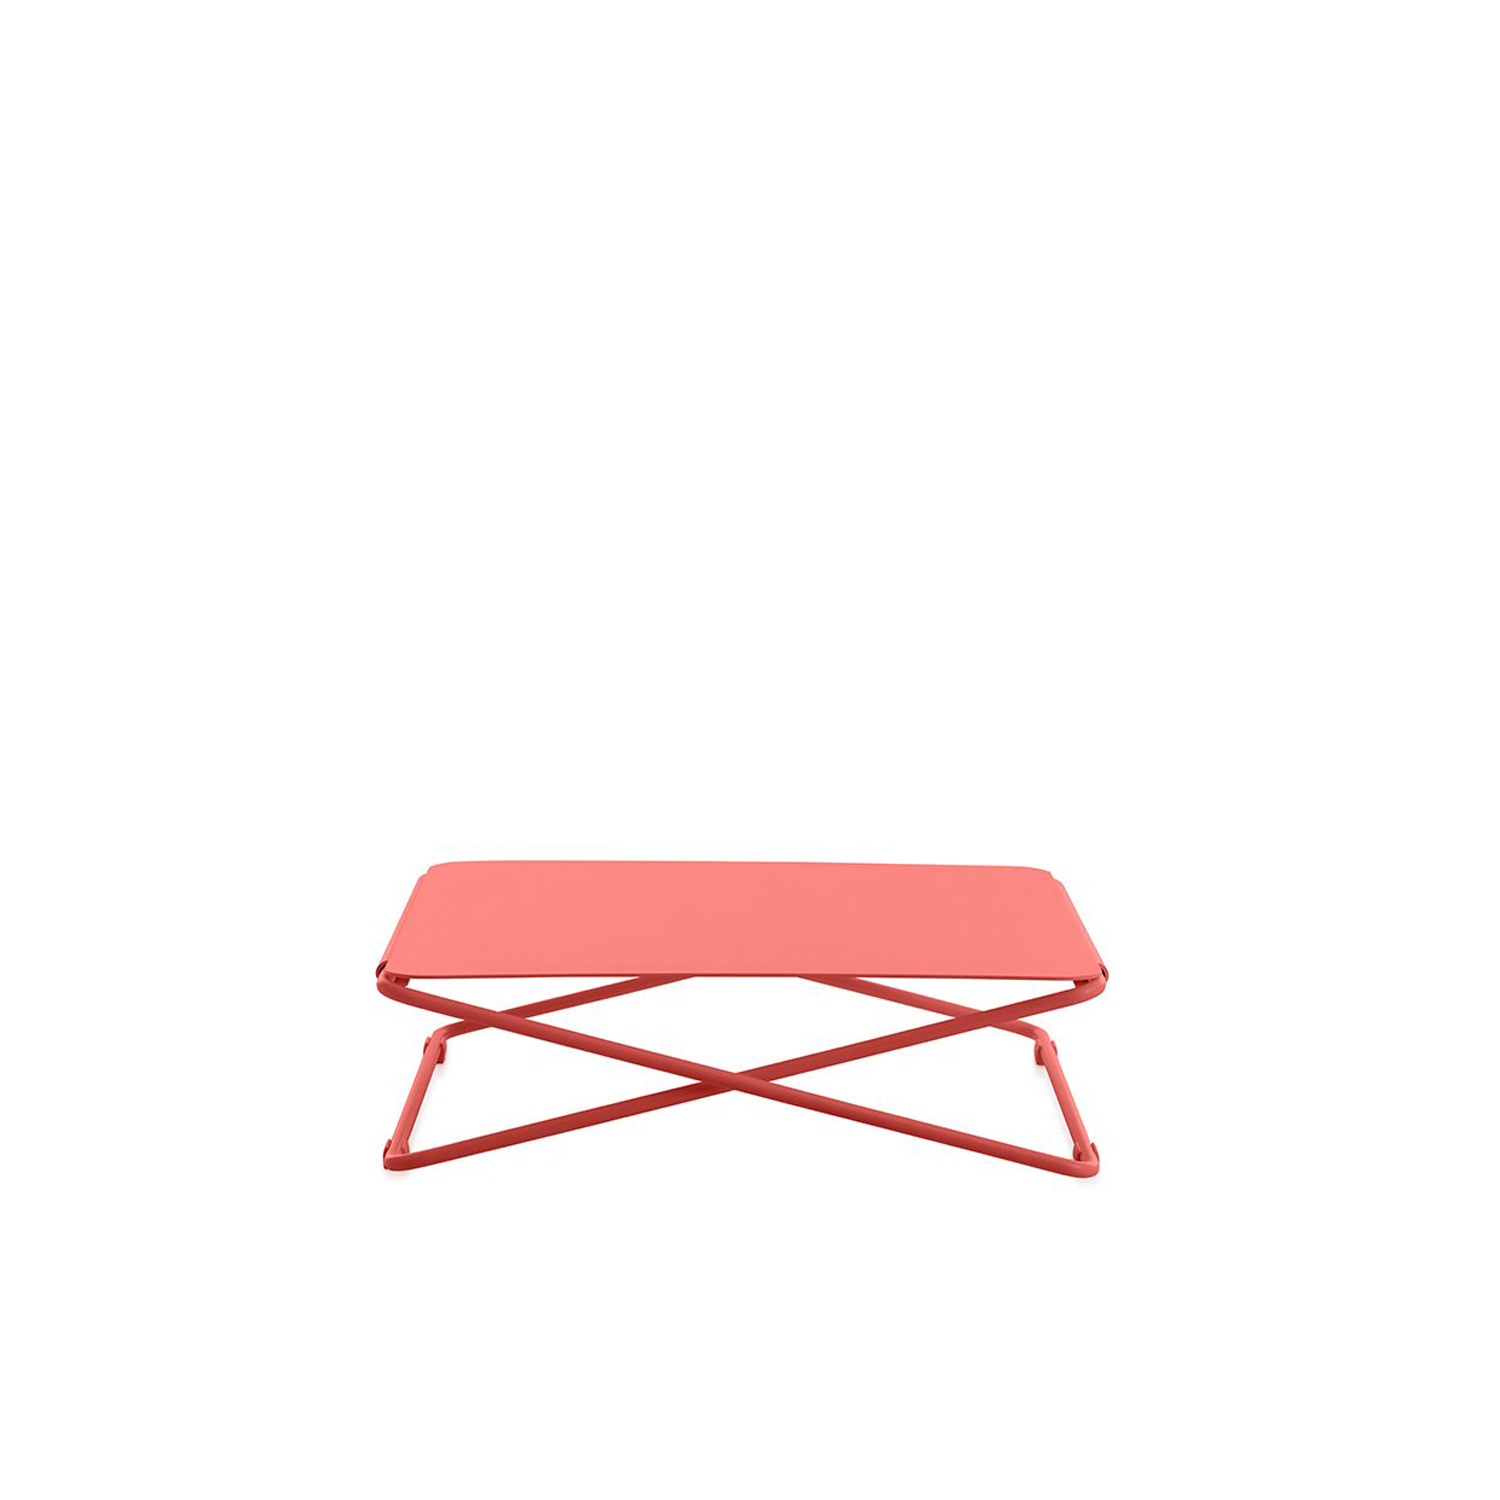 Valentina Table - The Valentina Outdoor collection has a casual and laid-back character that is at the same time elegant and colourful. It's the most genuine expression of Diabla's style. Its creator, Alejandra Gandía-Blasco Lloret, decided to design a seat using just two cushions and keeping other elements to the minimum. And that's how not just a whole family of sofas but also a lounger and this side or coffee table came to be.  | Matter of Stuff